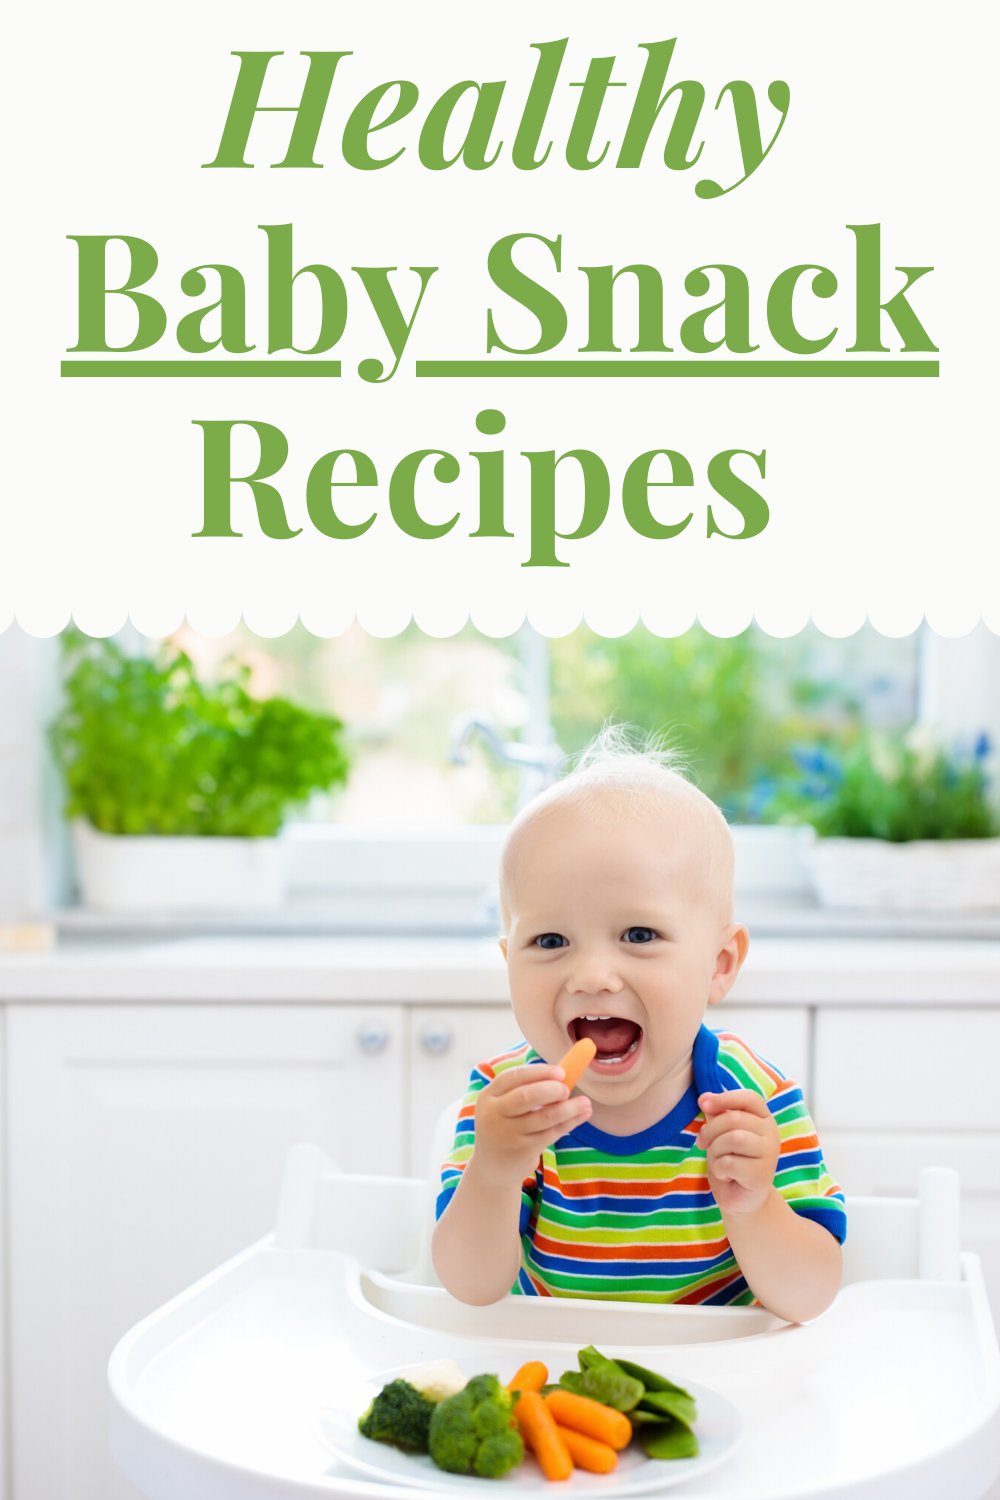 Are you at a loss of what healthy snack foods to give to your baby! Check out these 7 homemade baby snacks! Easy and healthy treats for your baby! #babyfood #babysnacks #organicfood